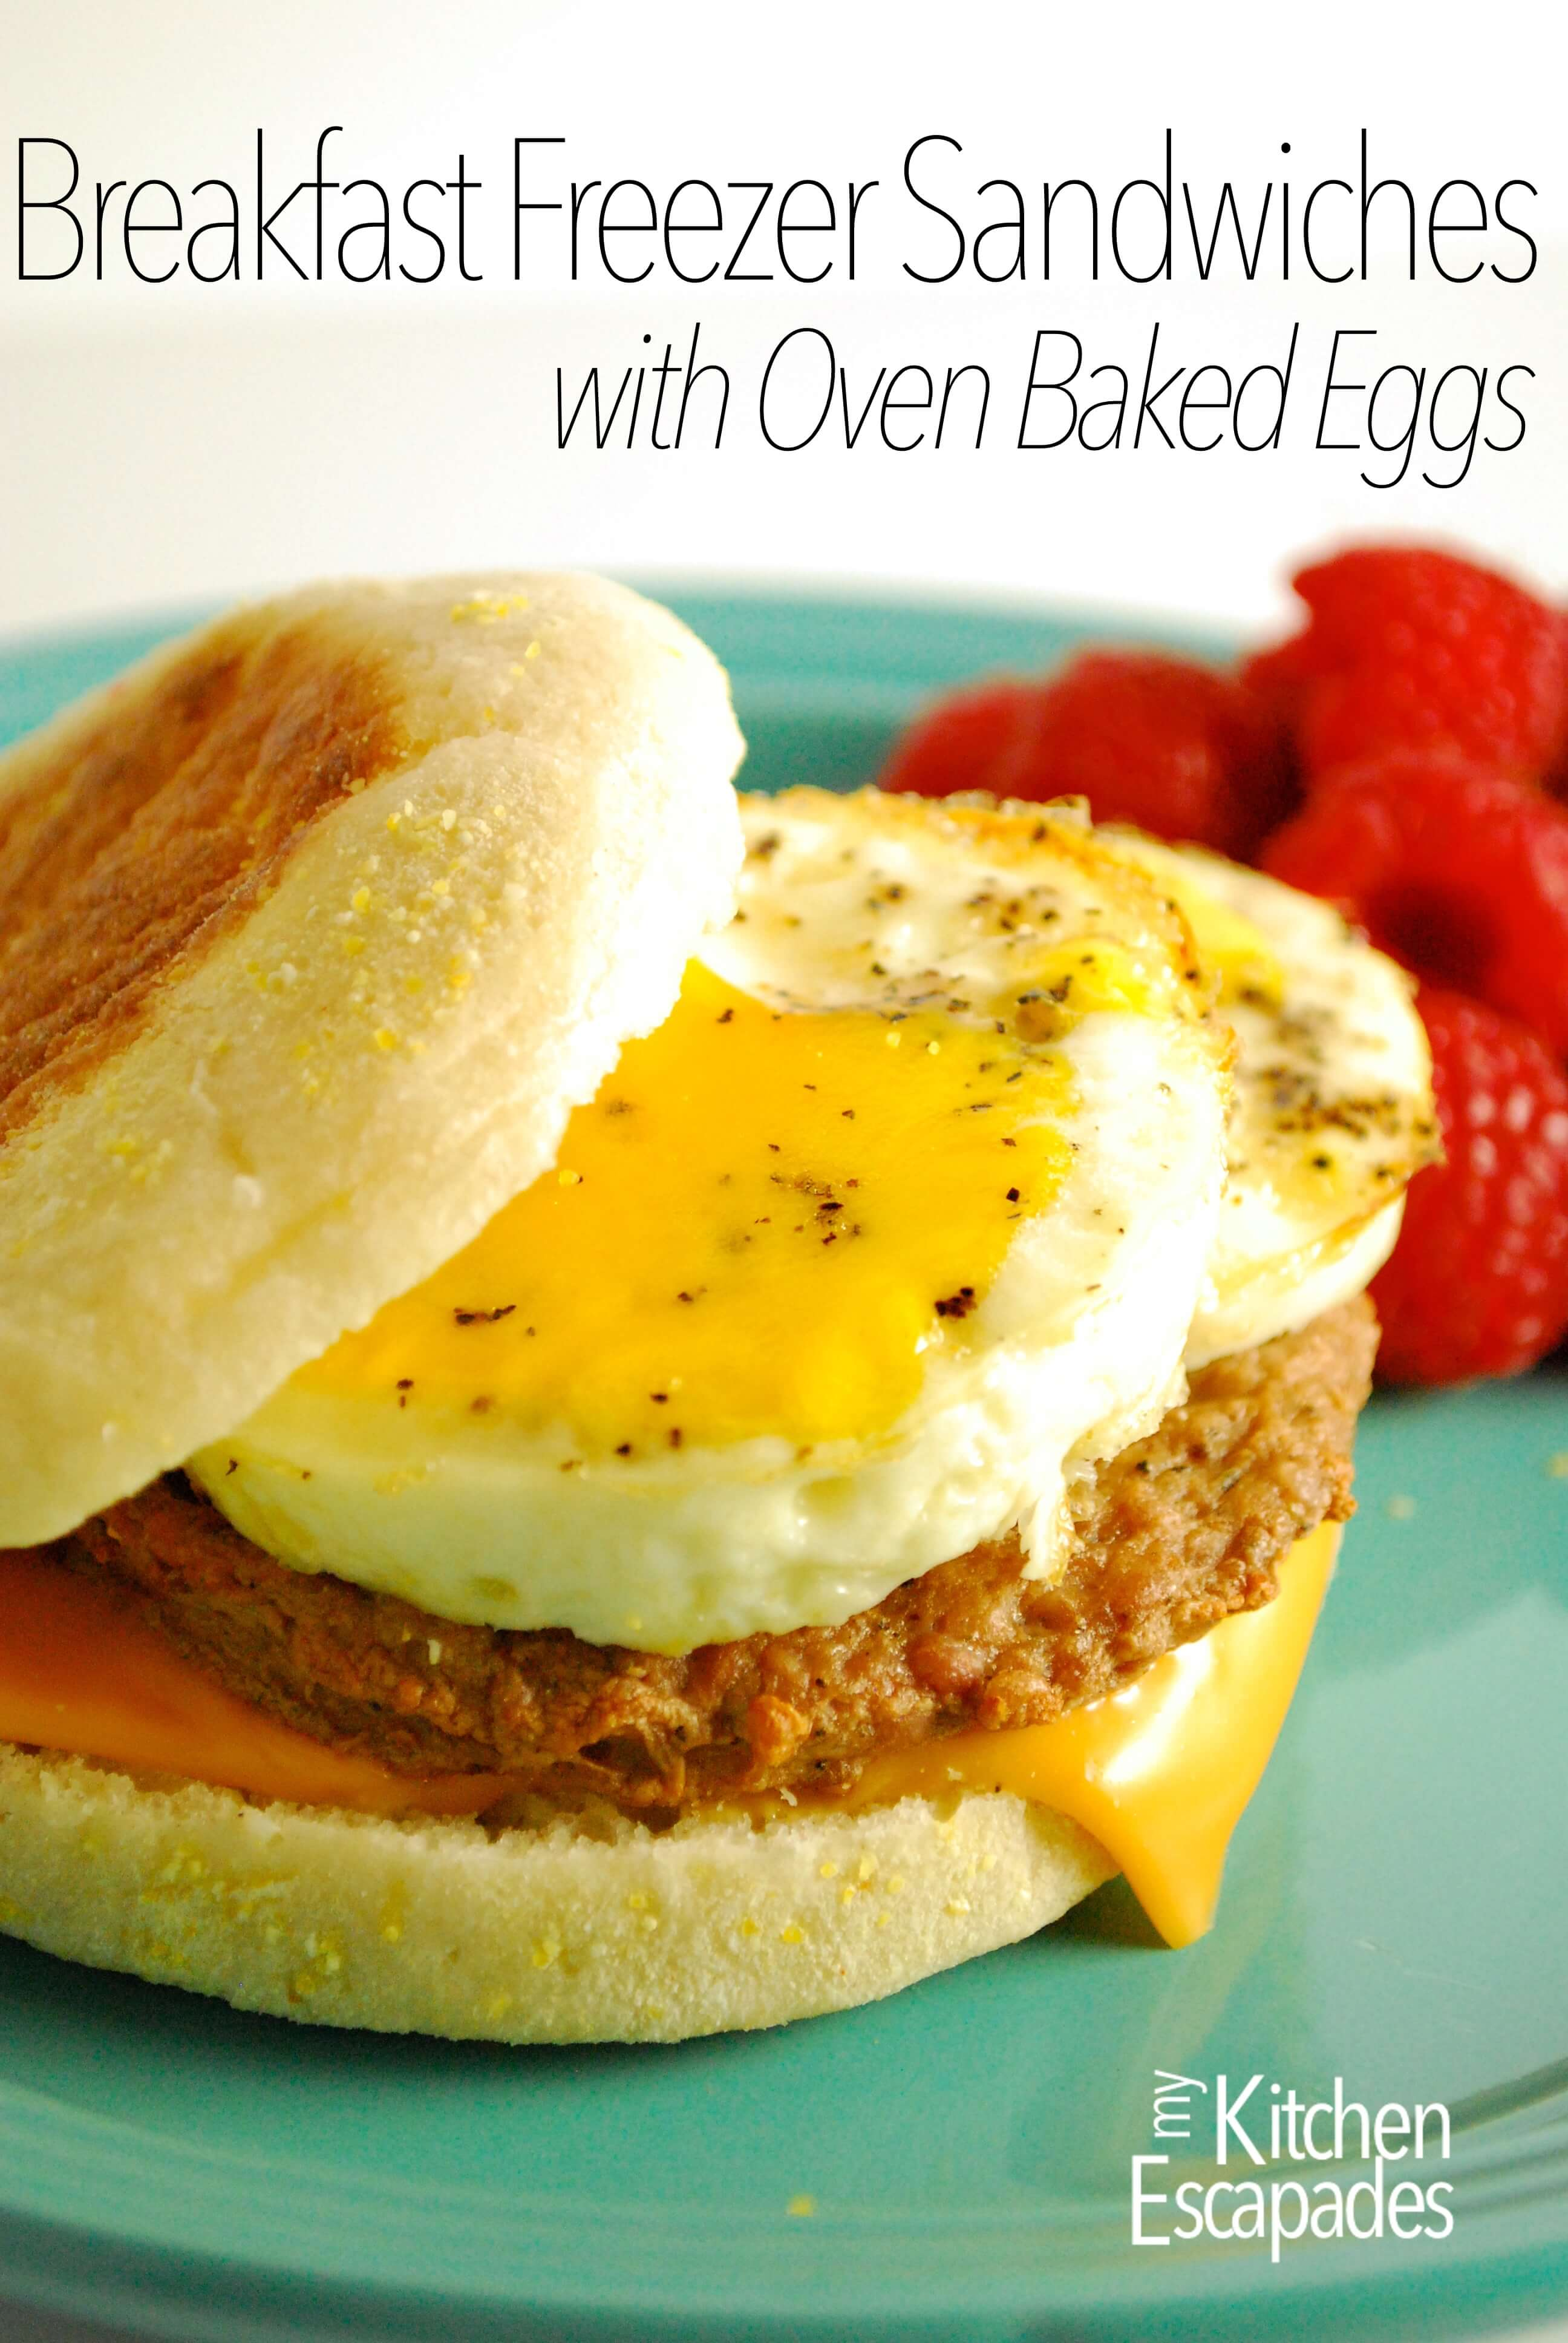 Breakfast Freezer Sandwiches with Oven Baked Eggs